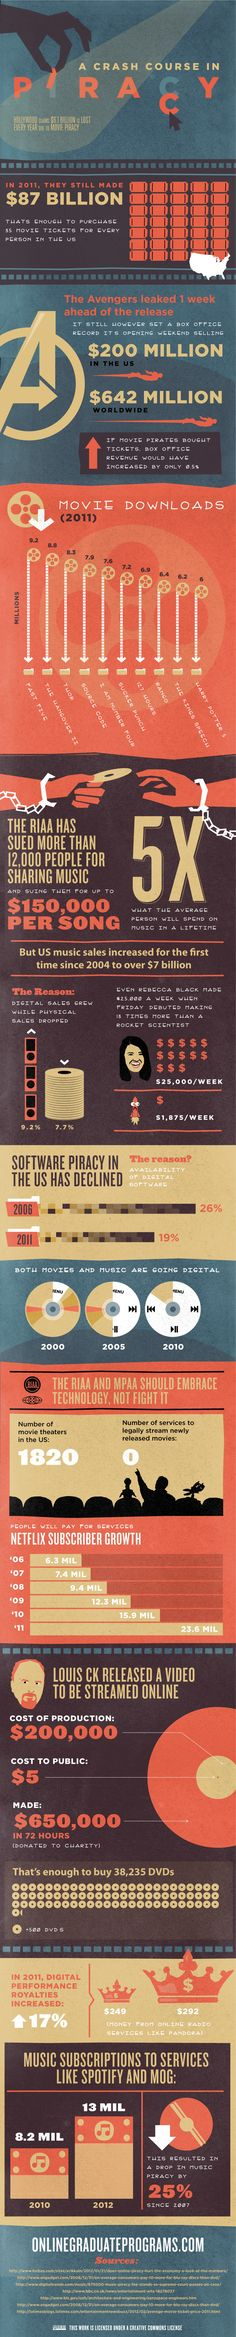 A Crash Course in Piracy (Why Piracy is NOT killing the entertainment industry and hollywood needs to embrace online technology)